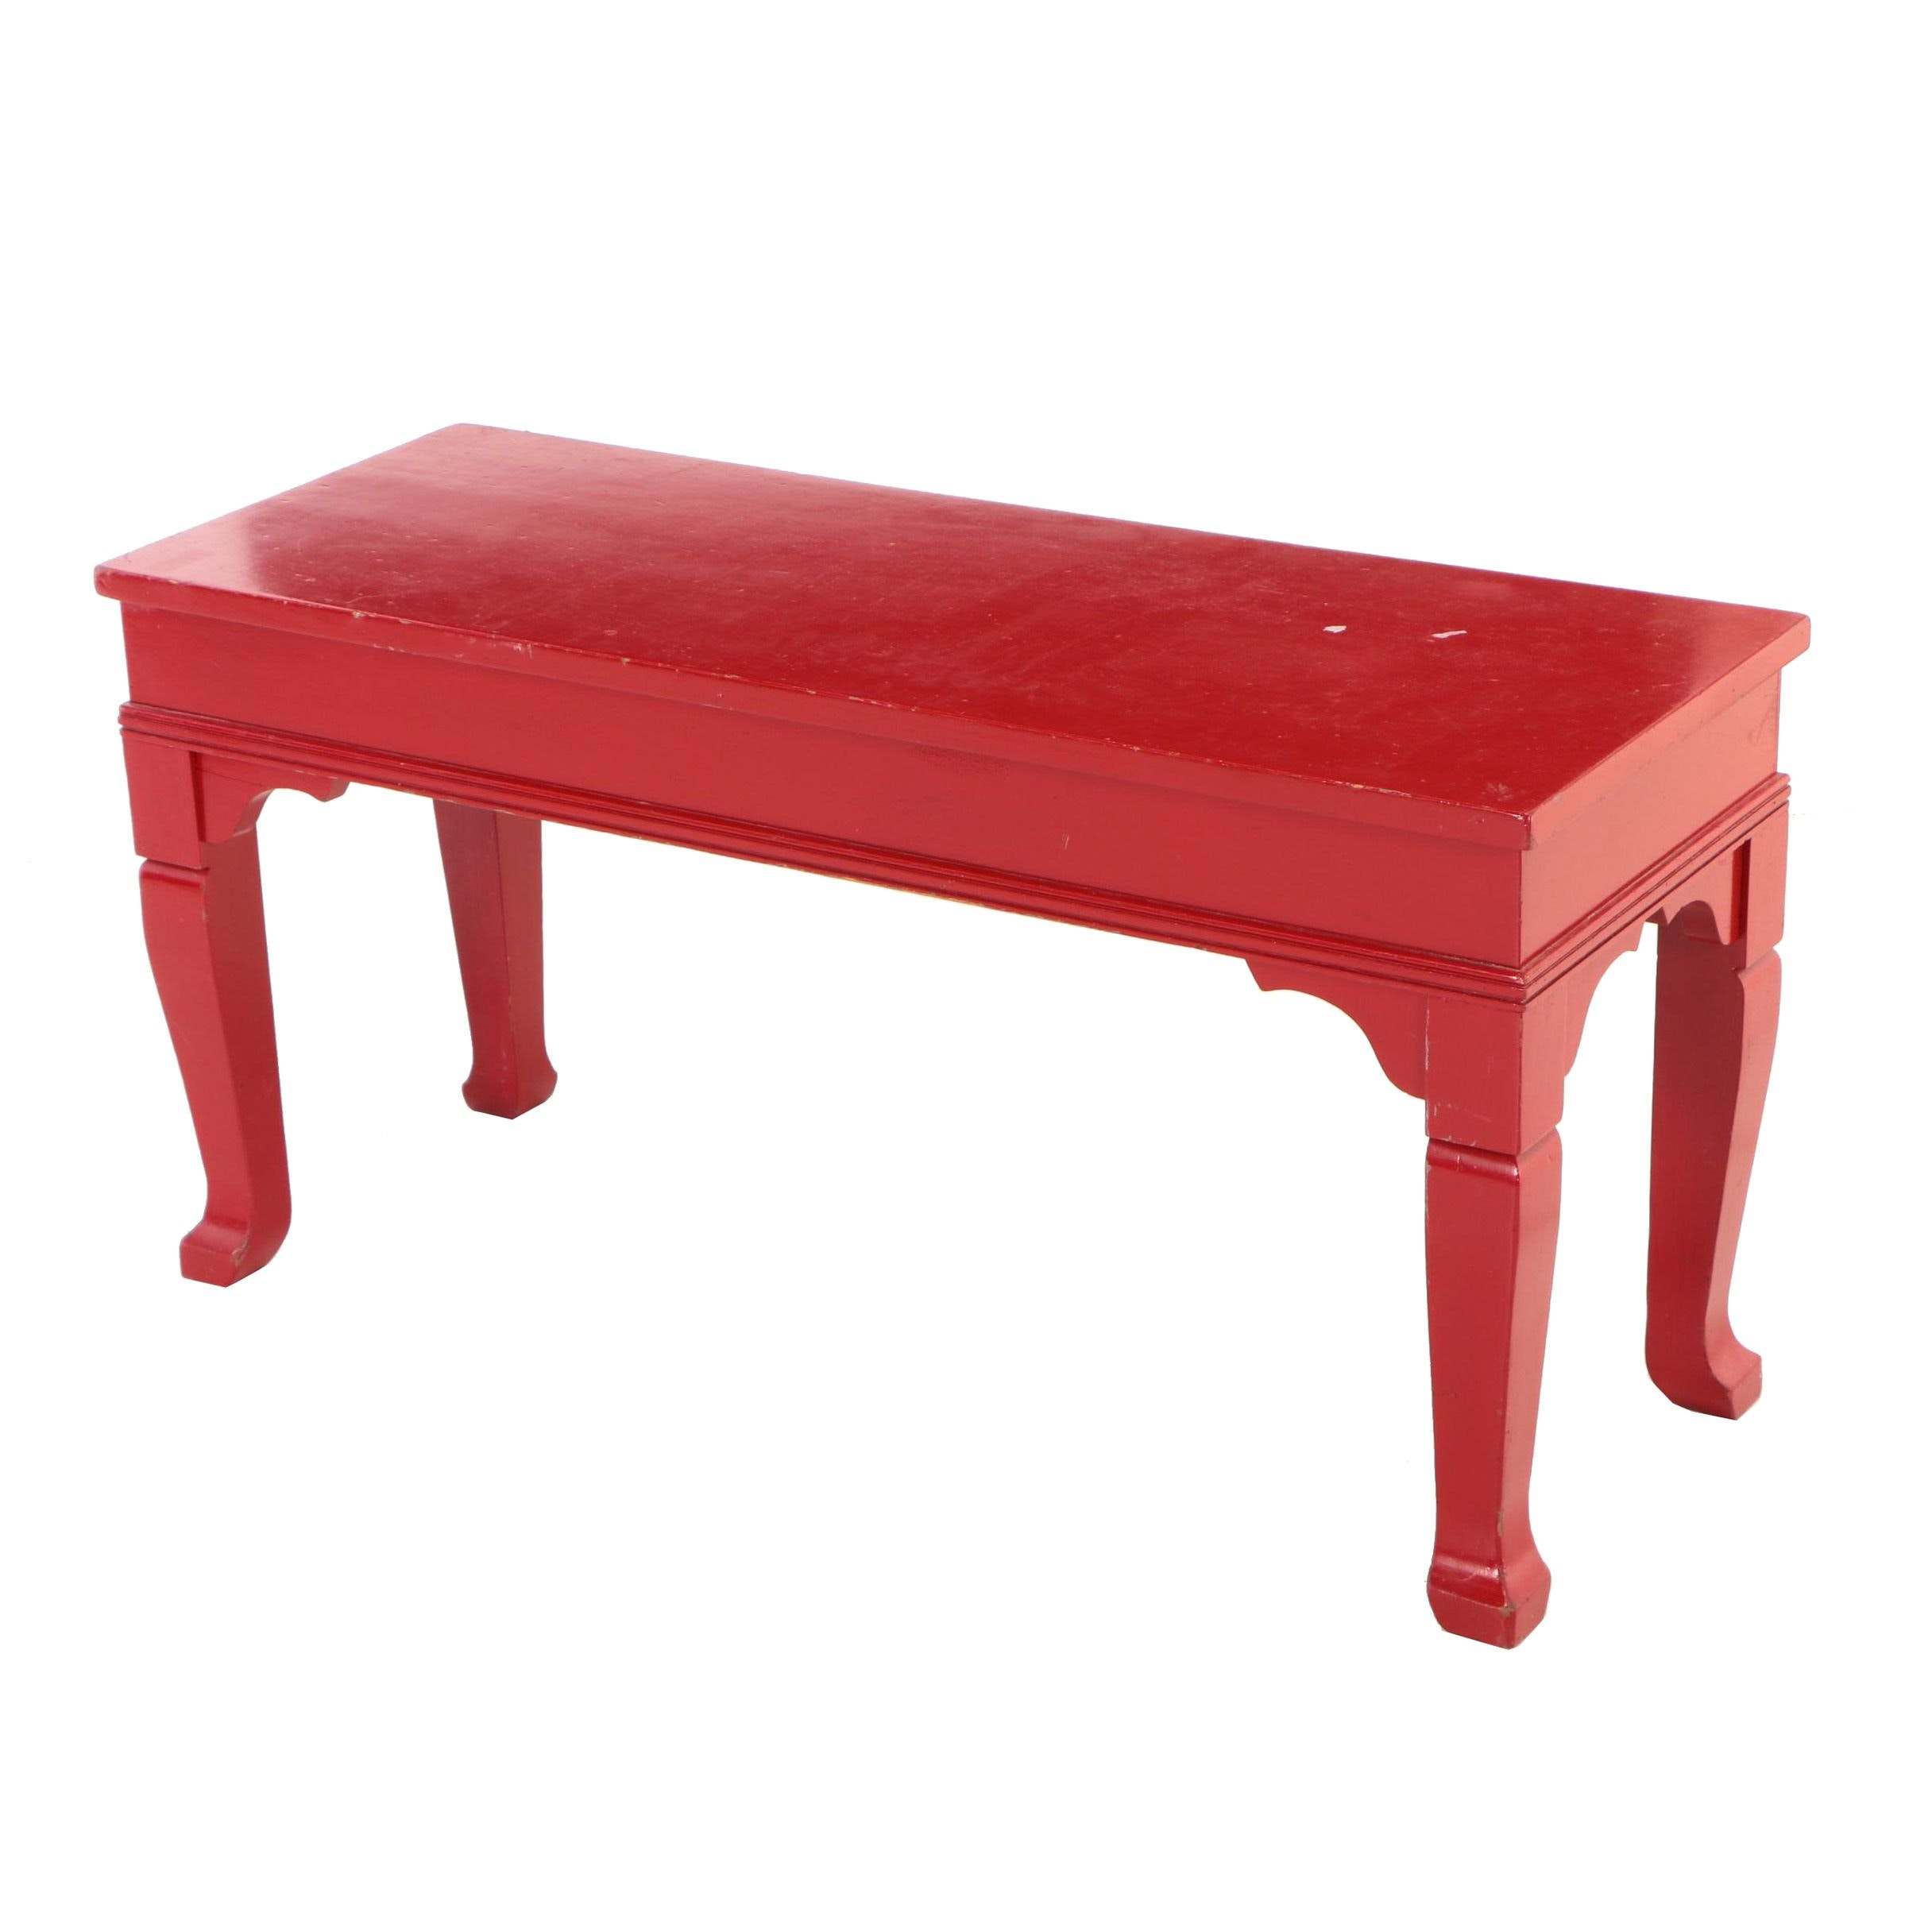 Red-Painted Wooden Lift-Lid Piano Bench, 20th Century